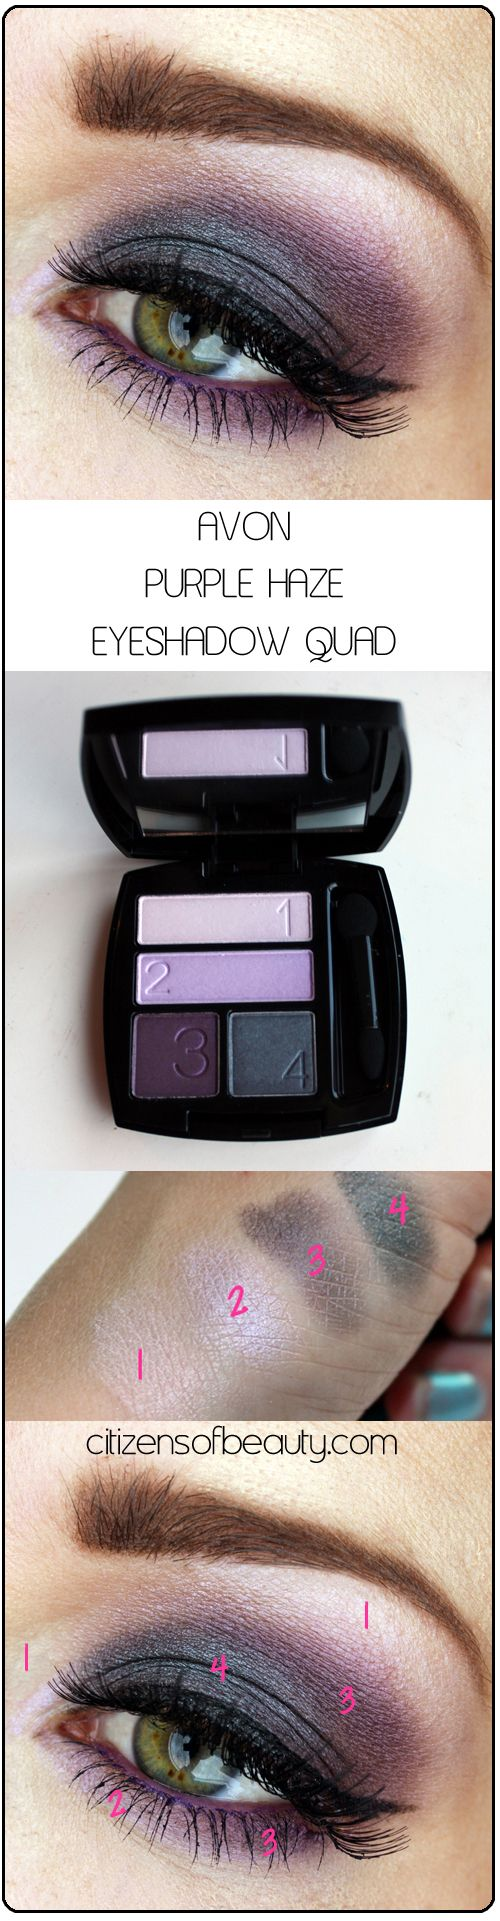 Avon's Purple Haze from the True Color Eyeshadow Quad. Photo from citizensofbeauty.com